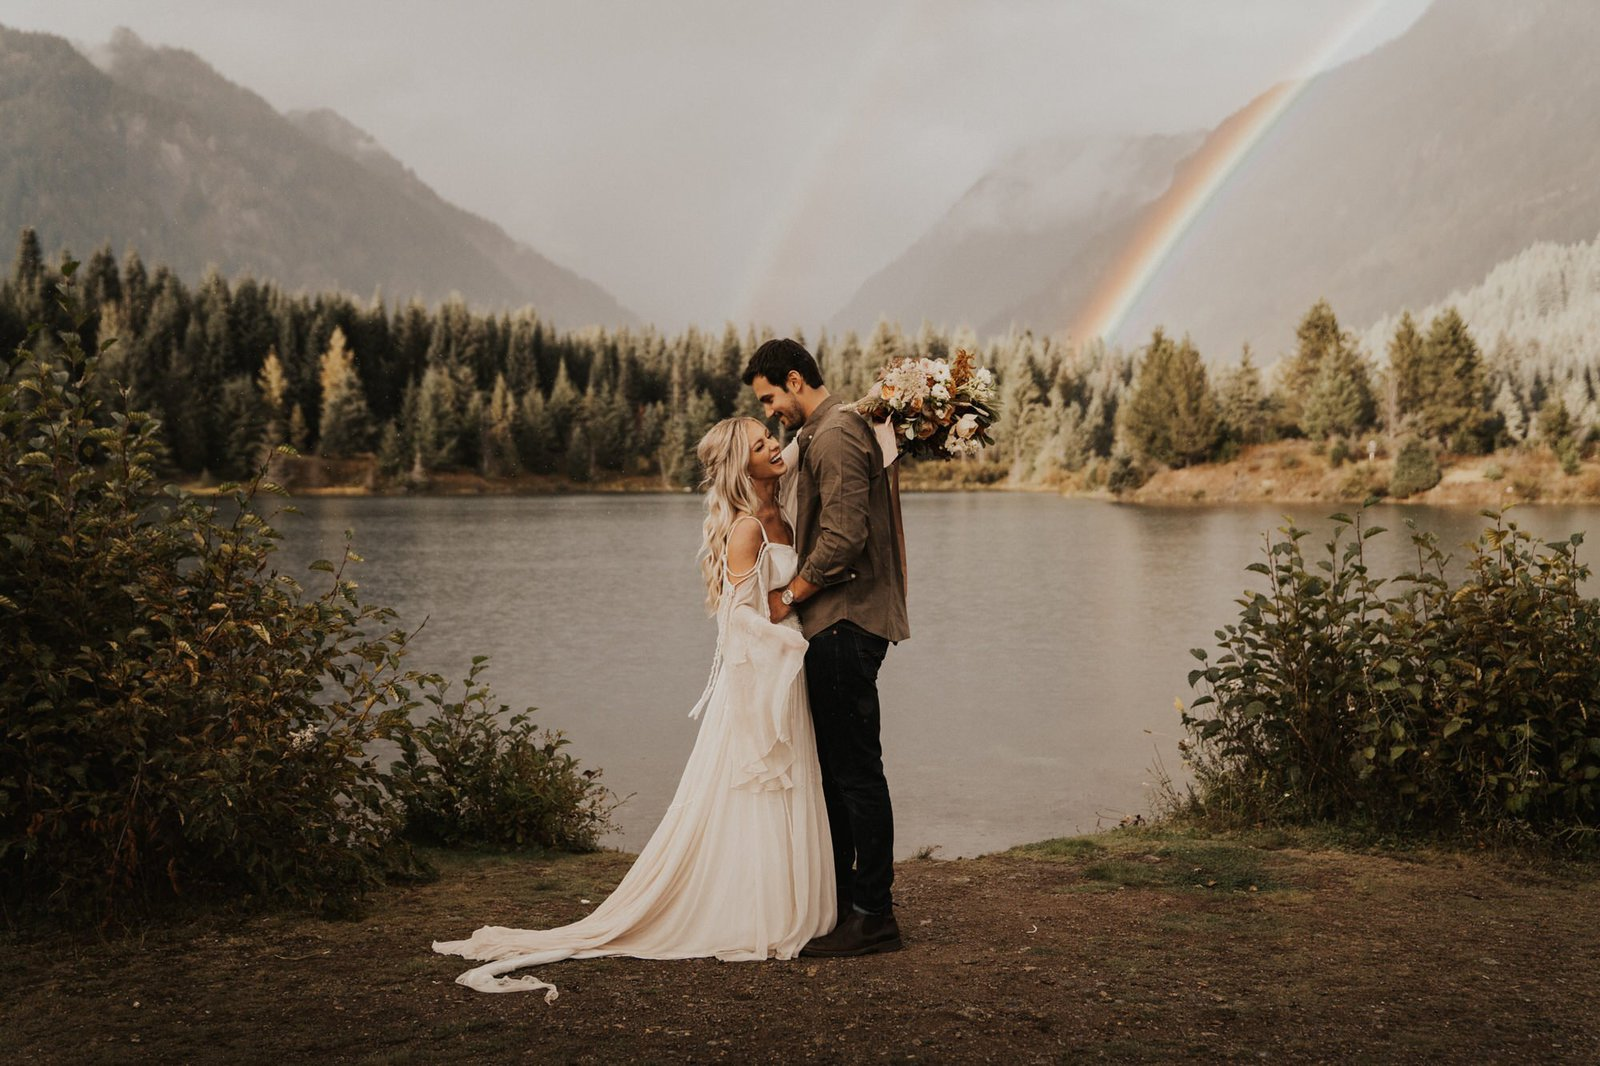 Wedding portraits for boho couples.